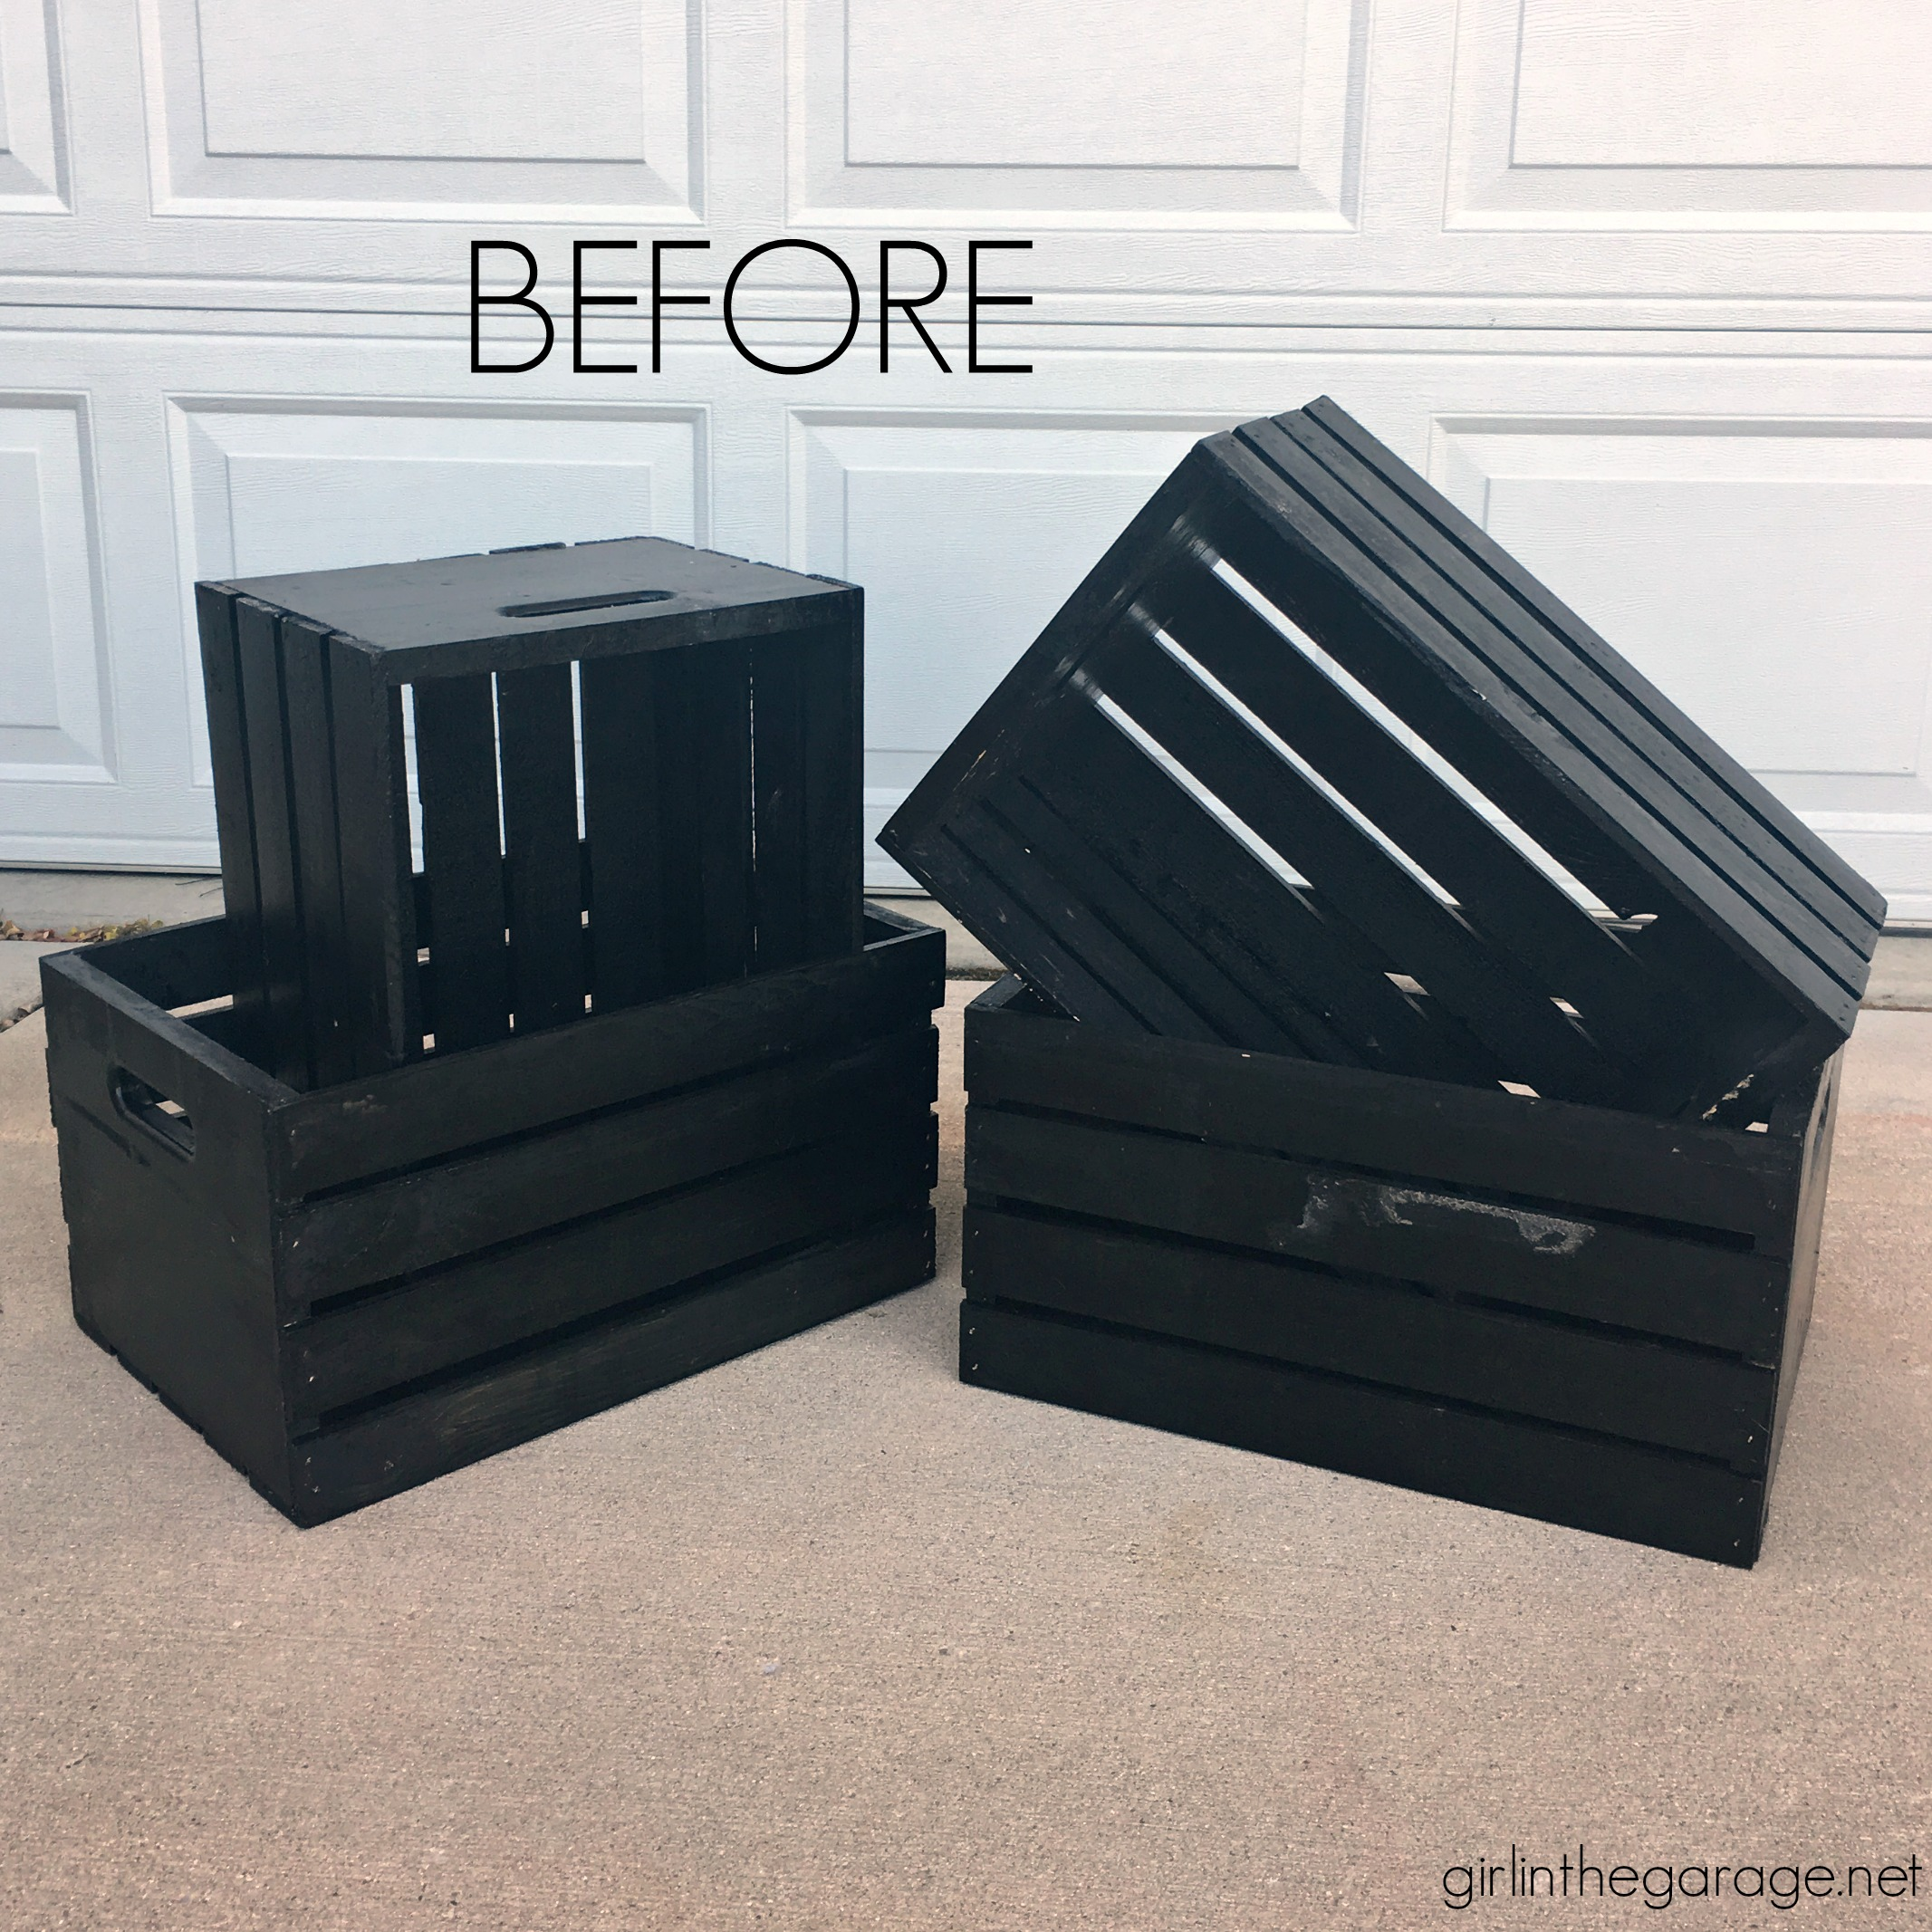 How to paint holiday crates - Learn how to stencil wooden crates for both fall and Christmas decor. Step by step tutorial by Girl in the Garage.